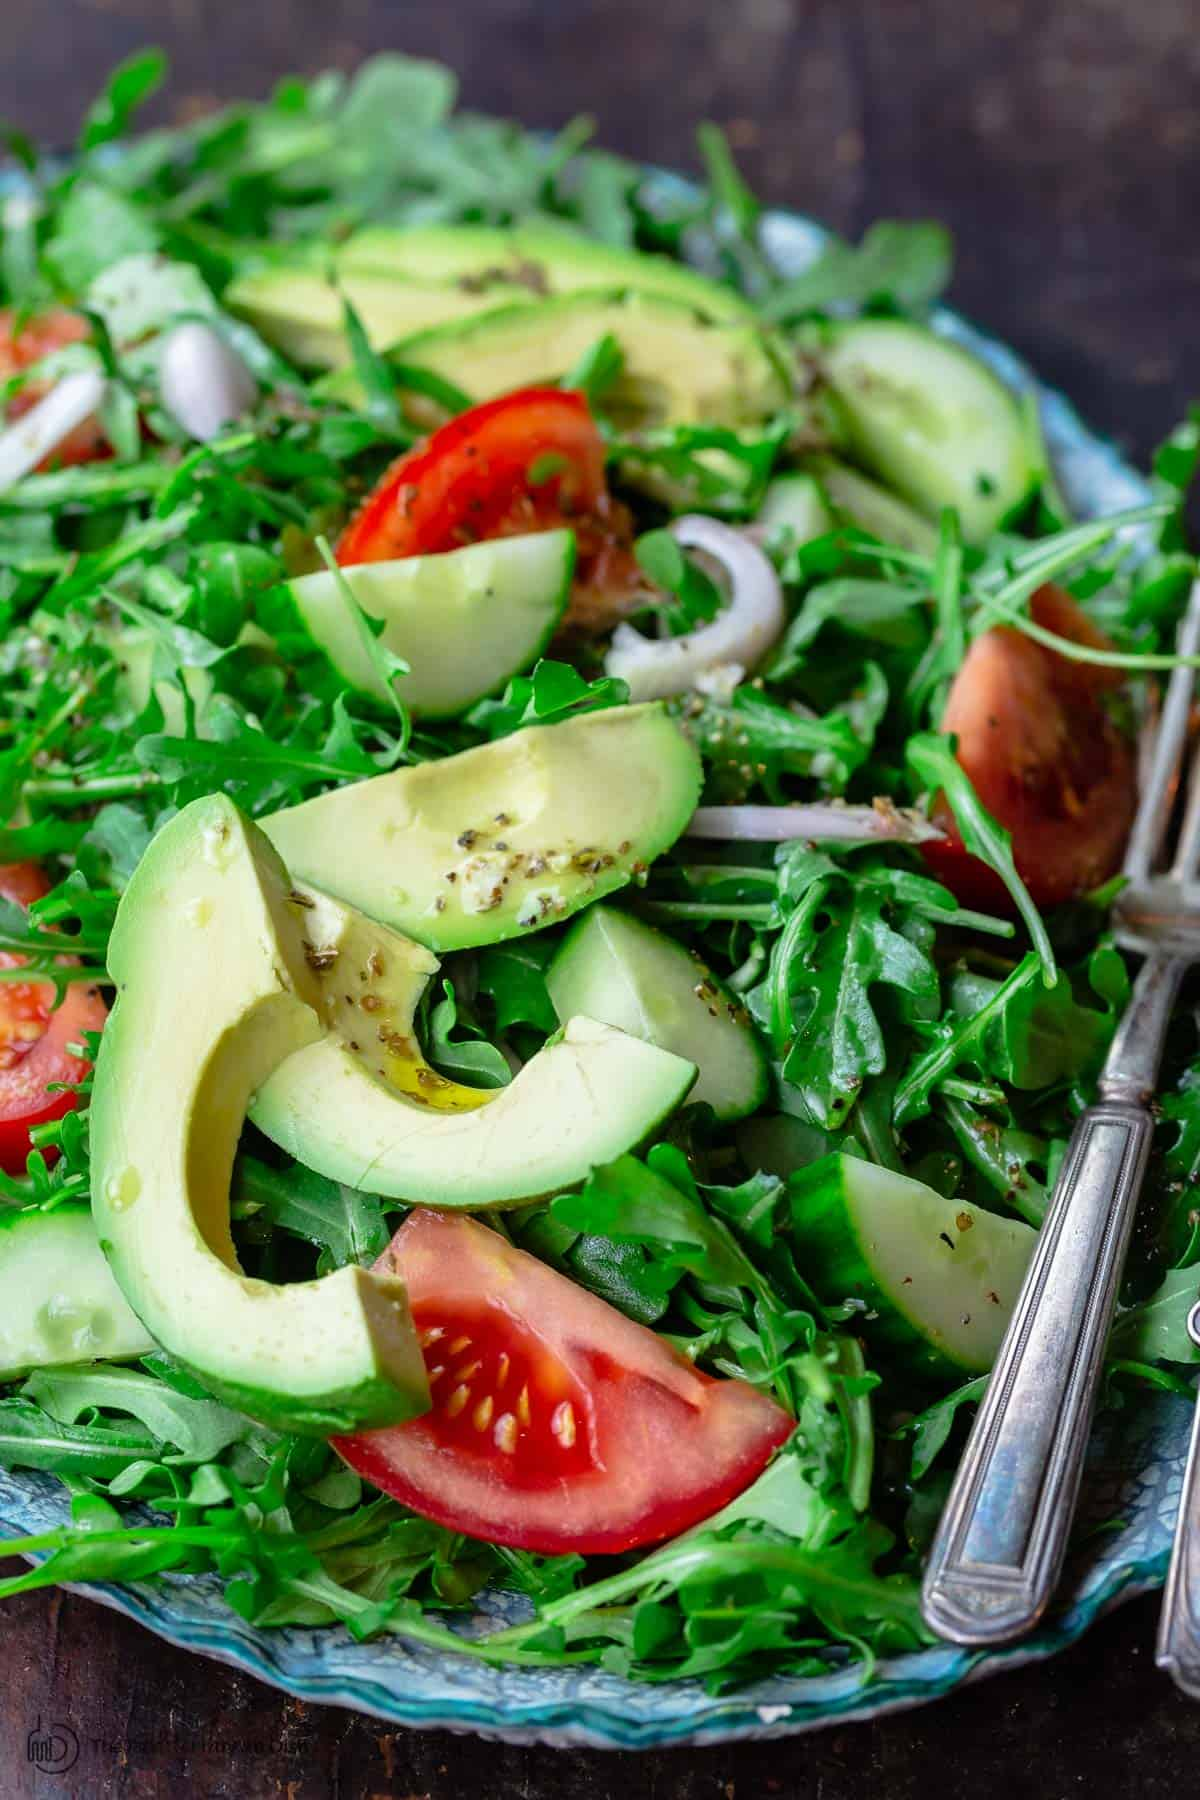 Simple Lemony Arugula Salad With Avocado The Mediterranean Dish